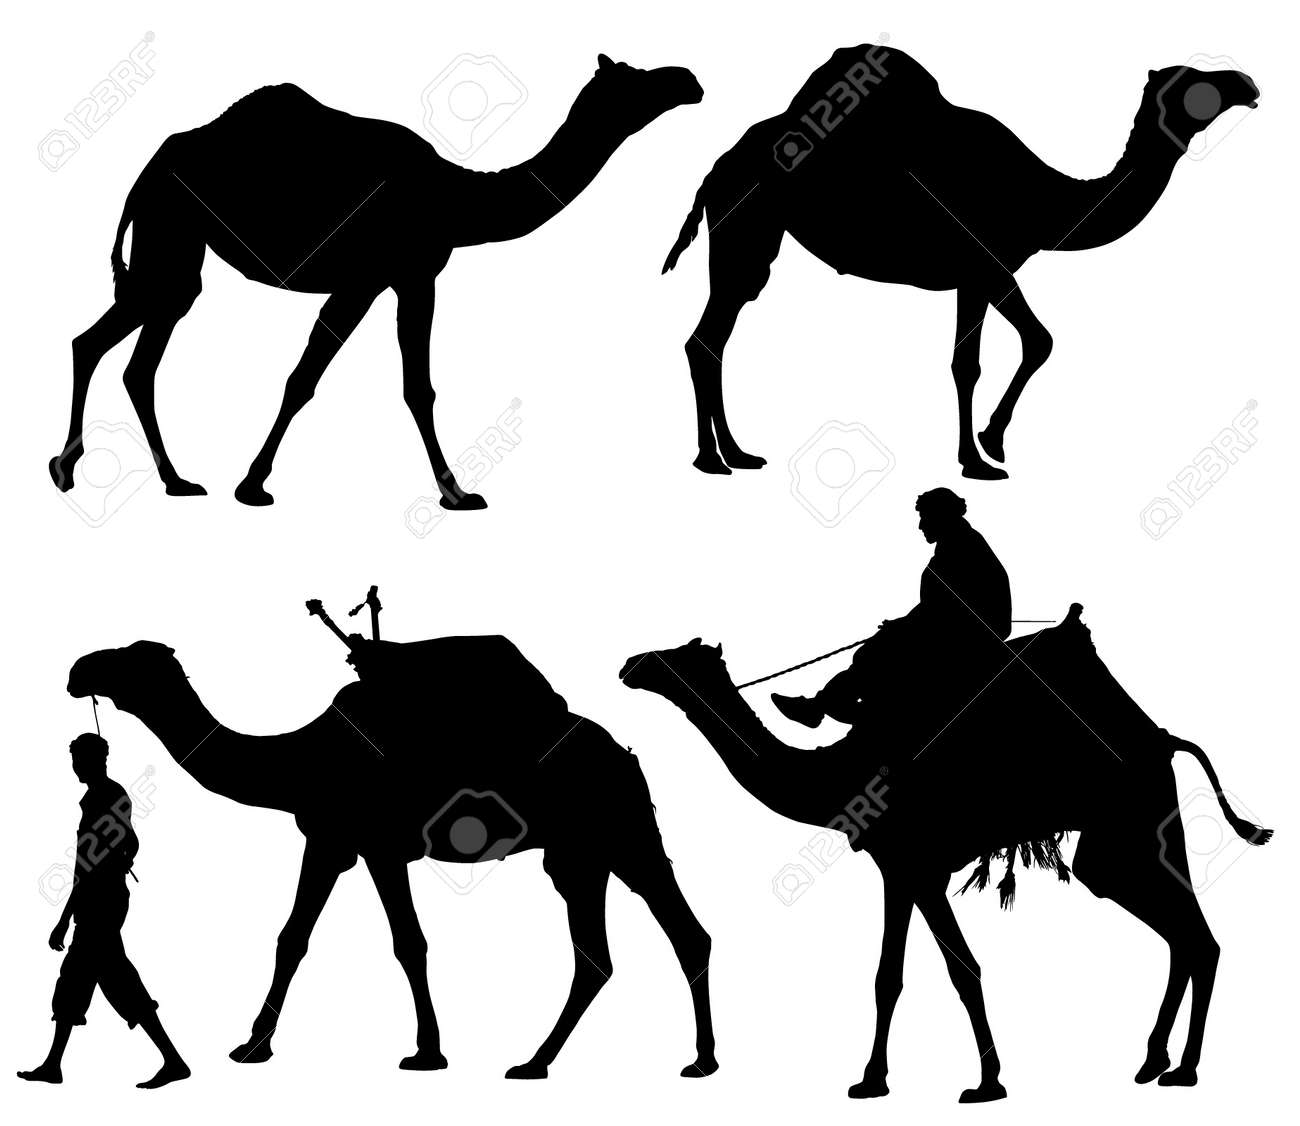 Camel Silhouette on white background - 16221346